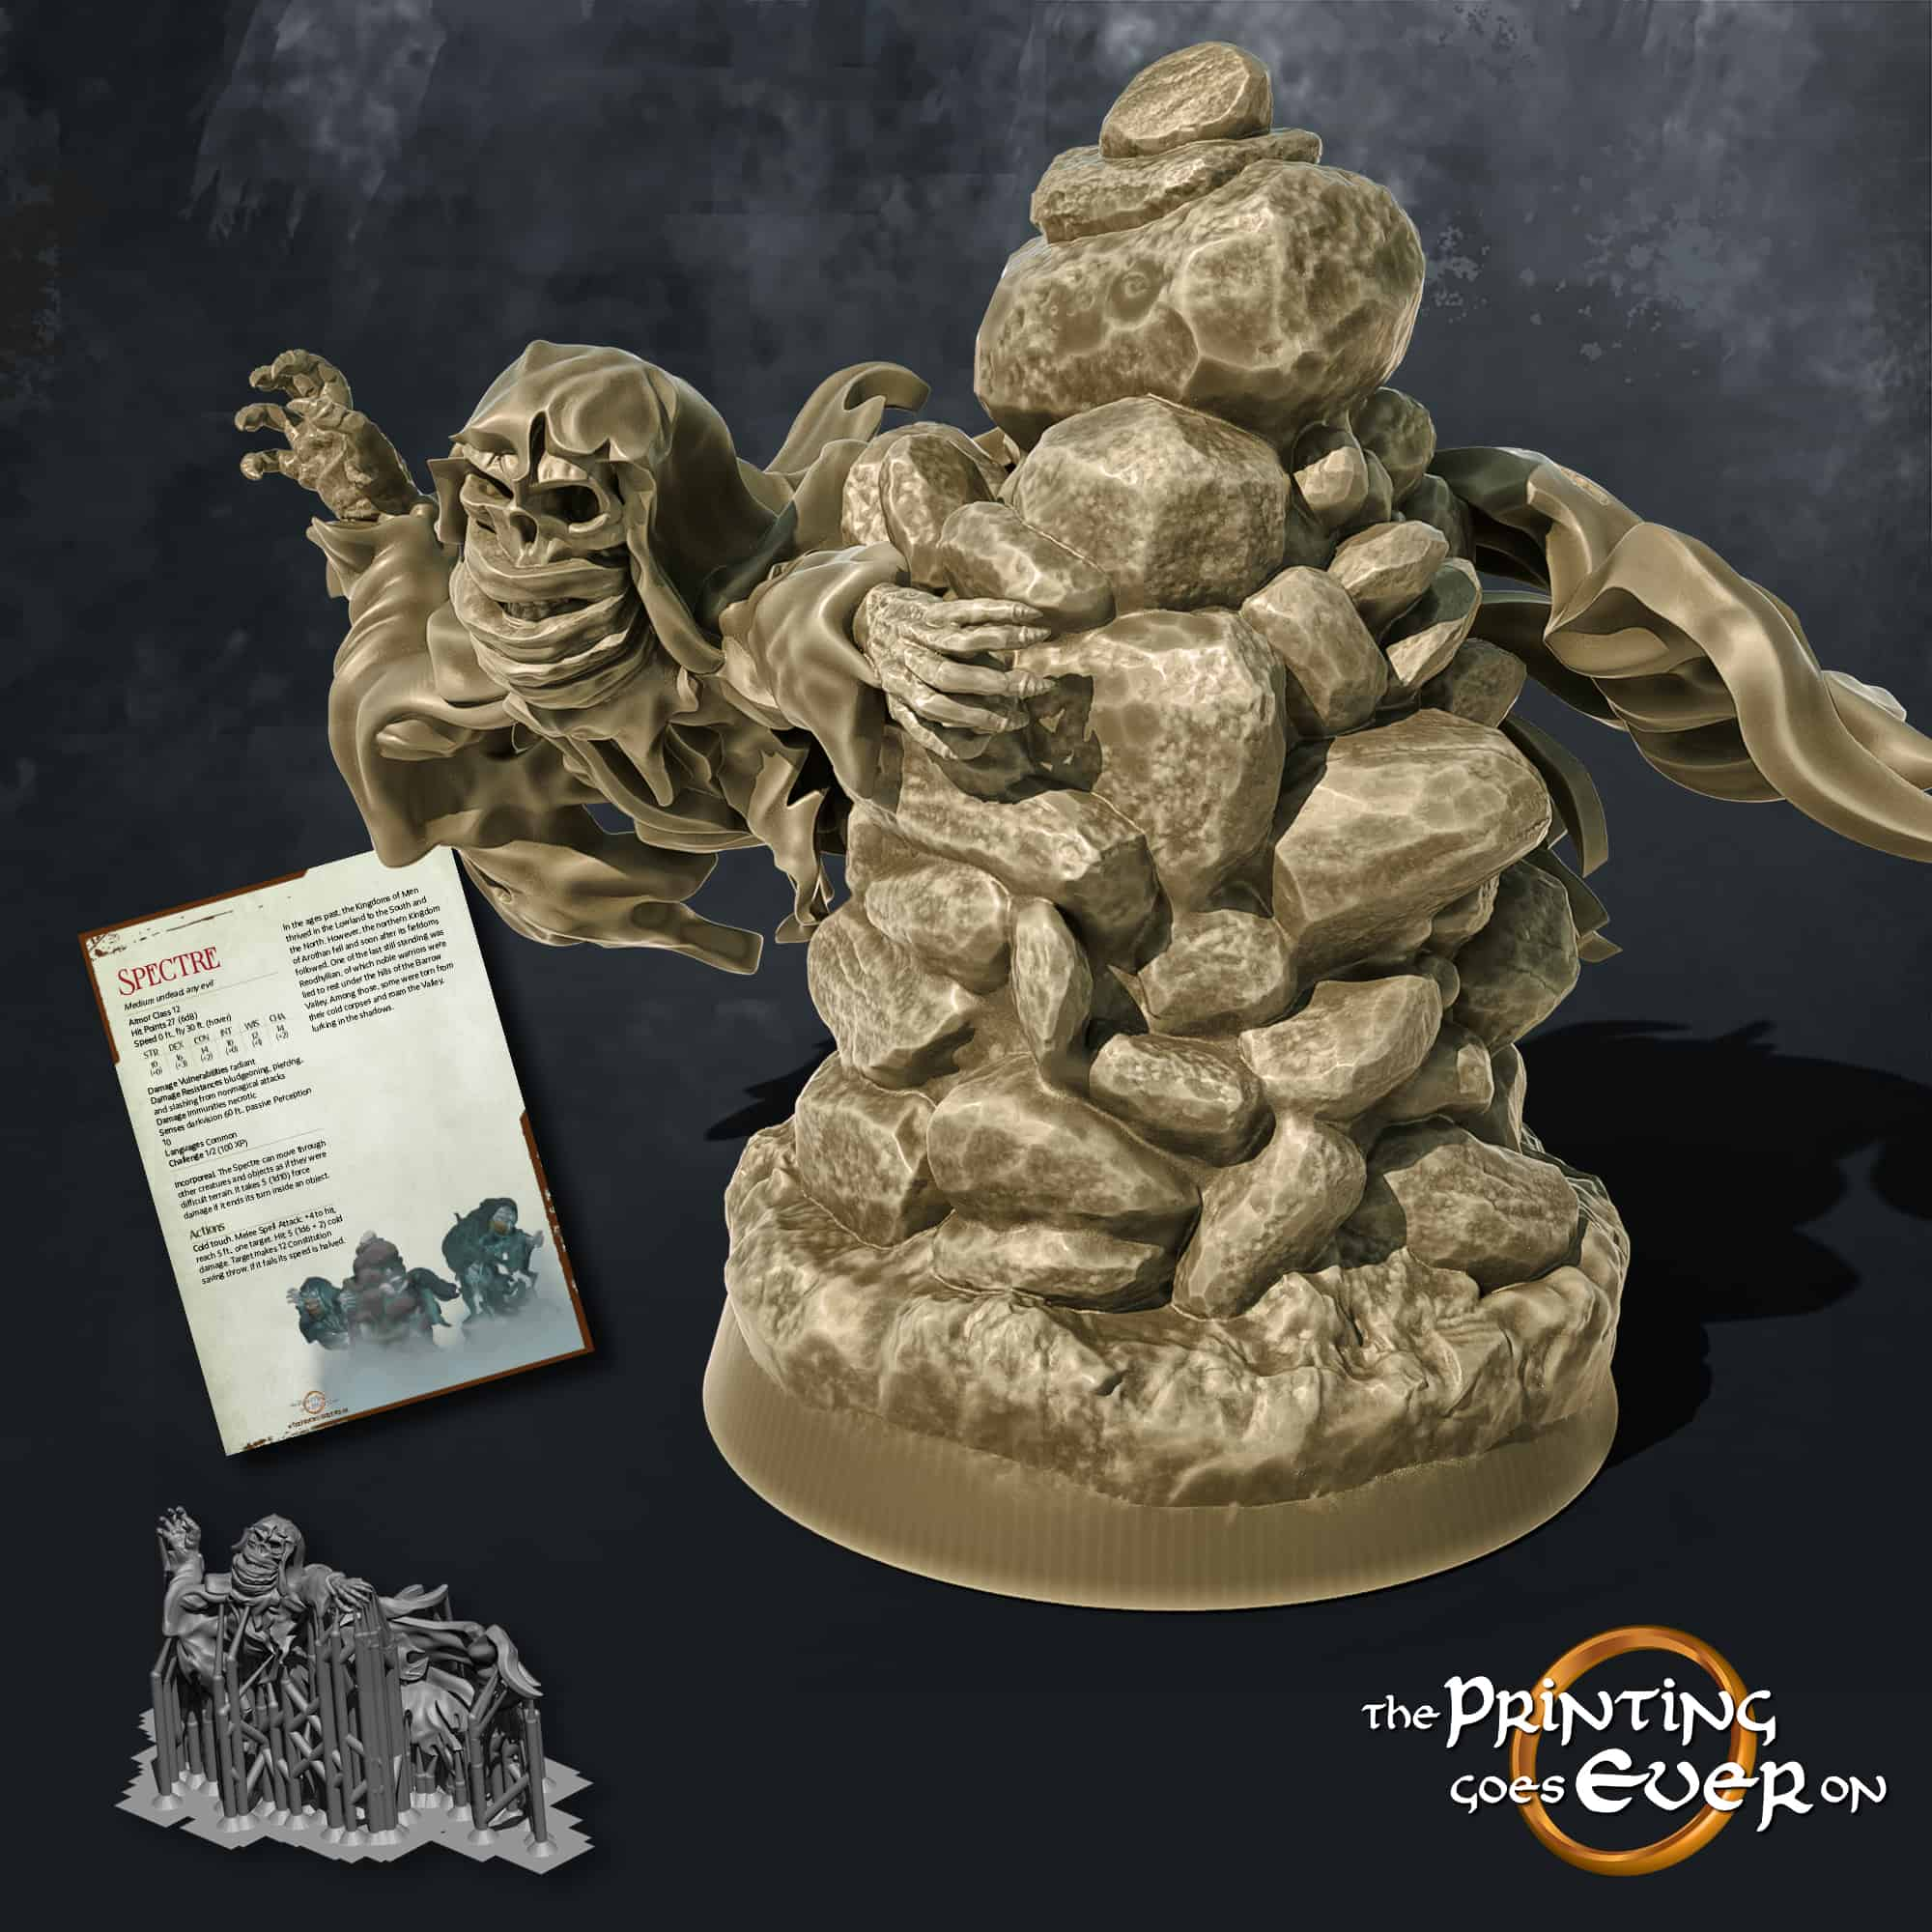 spectre ghost behind a rock cairn 3d printable tabletop miniature from the printing goes ever on patreon august 2020 pack